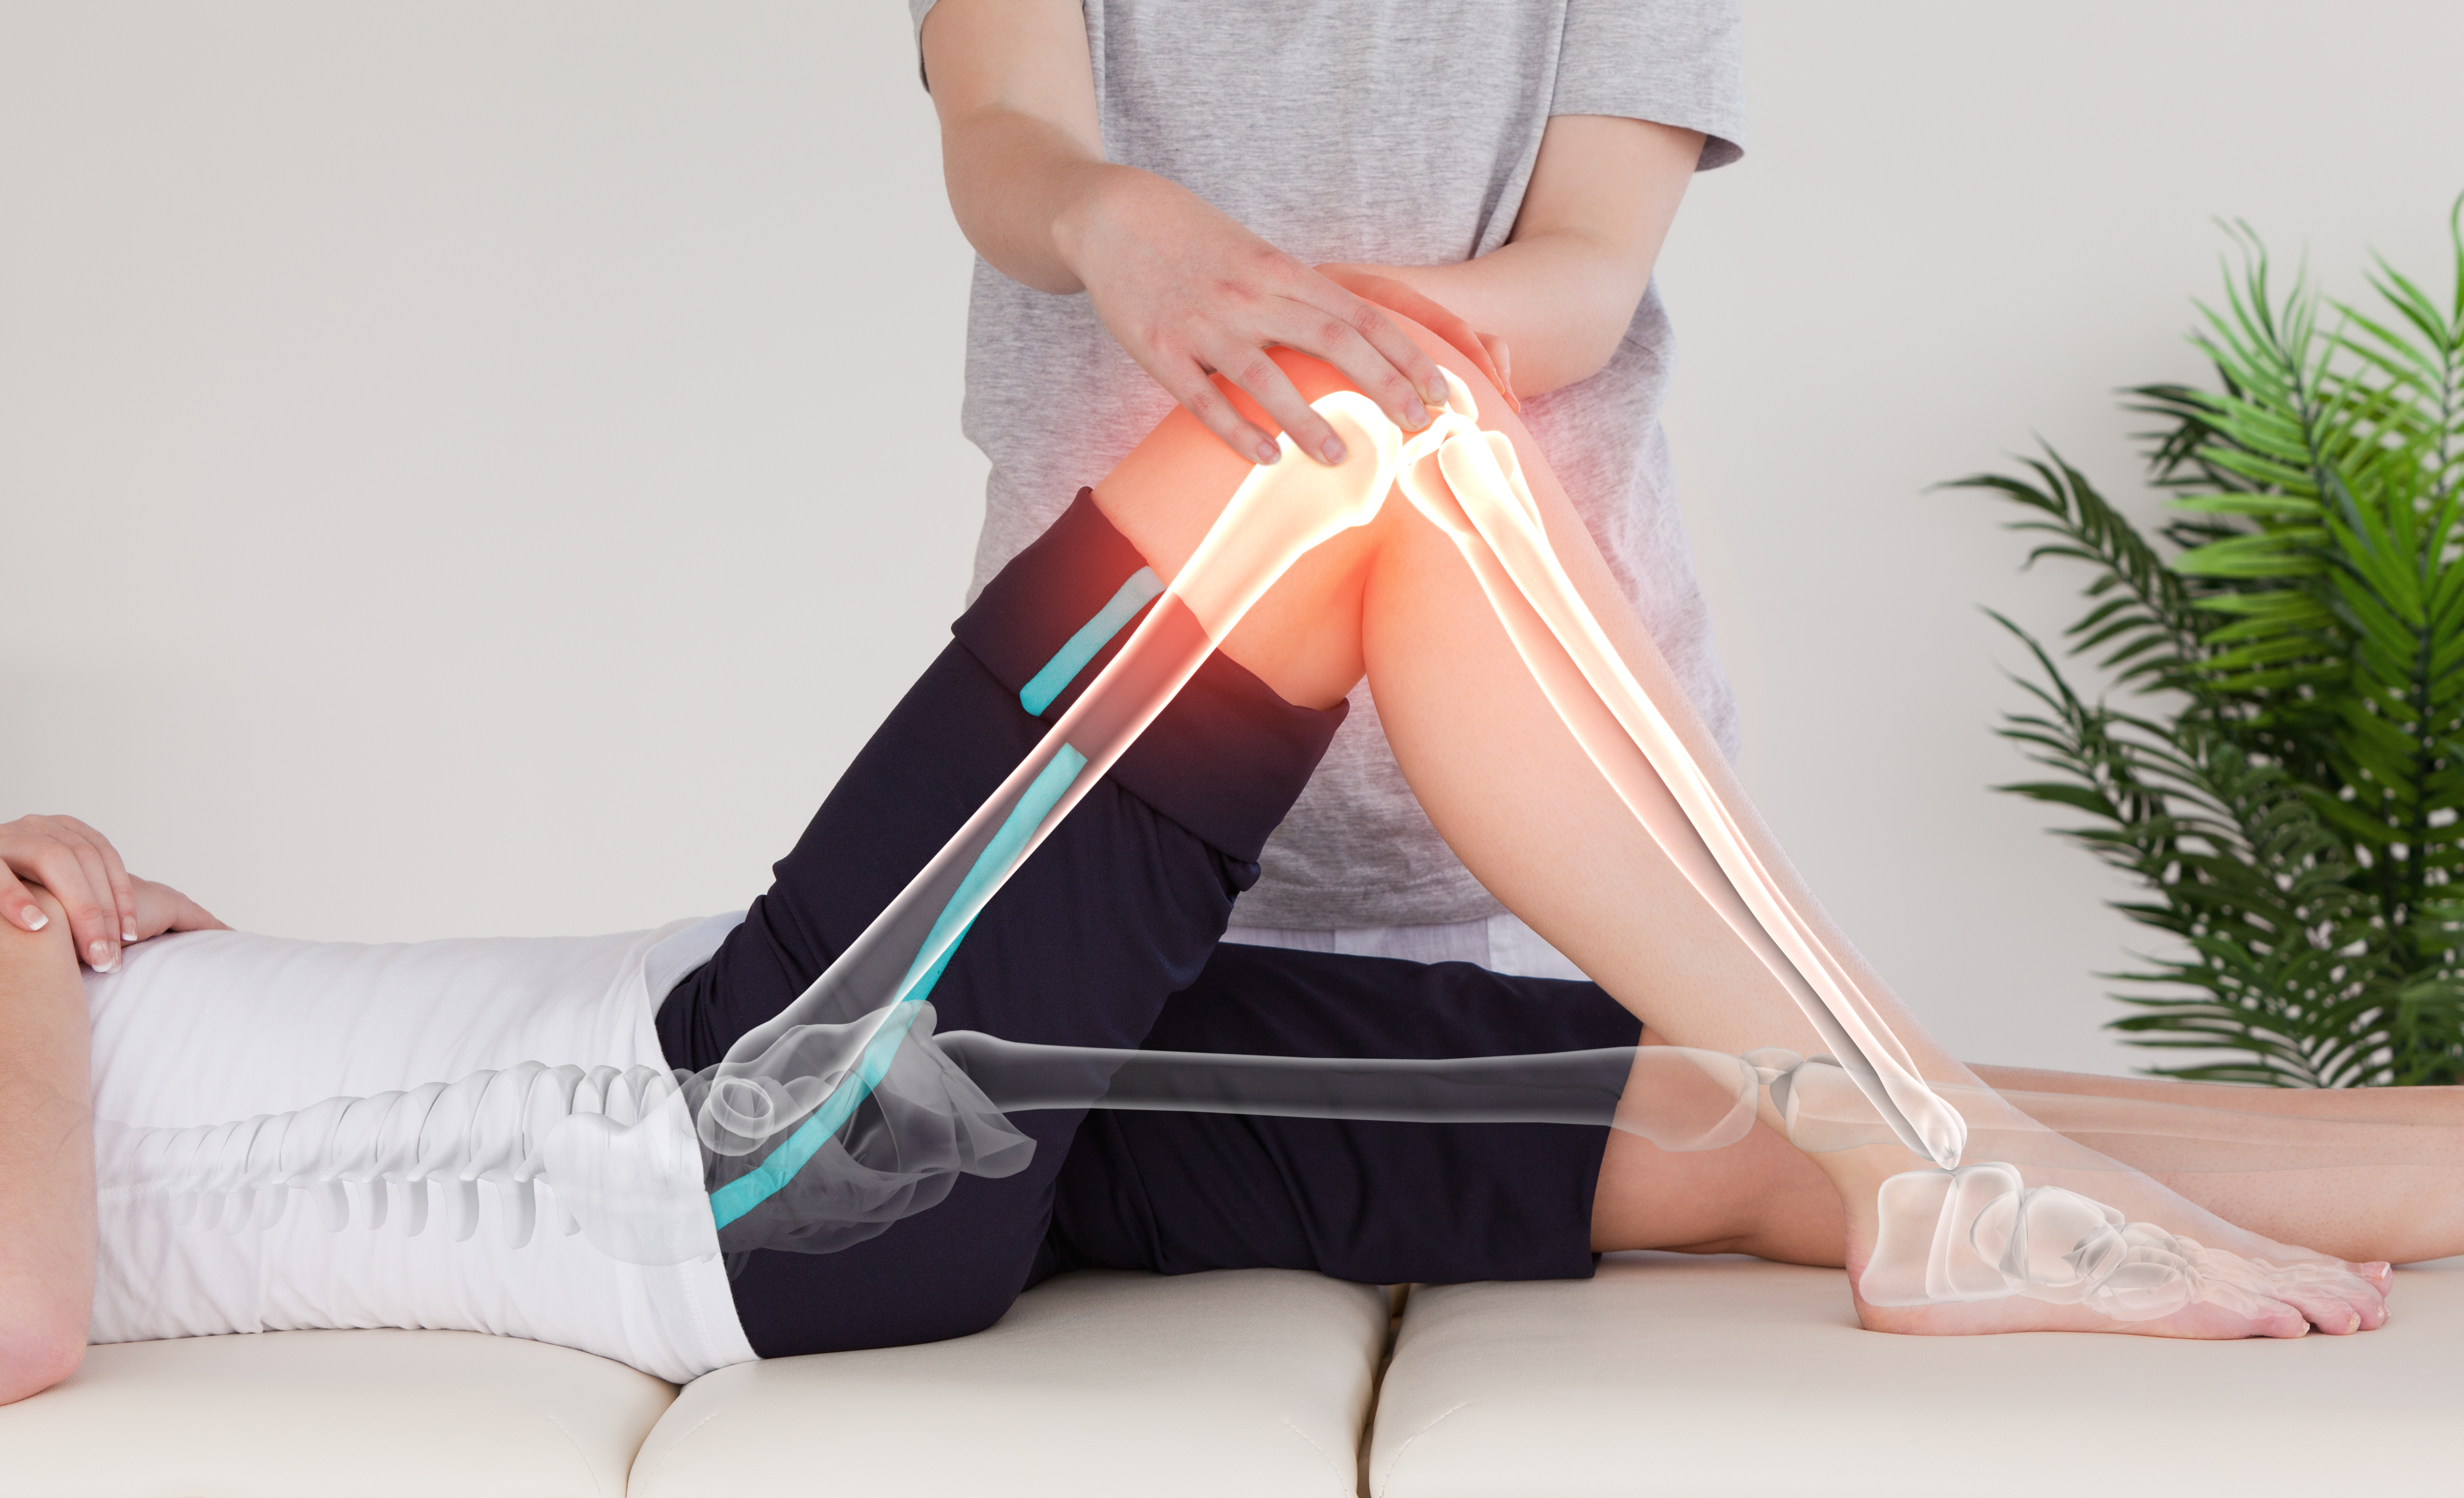 physical therapist adjusting knee